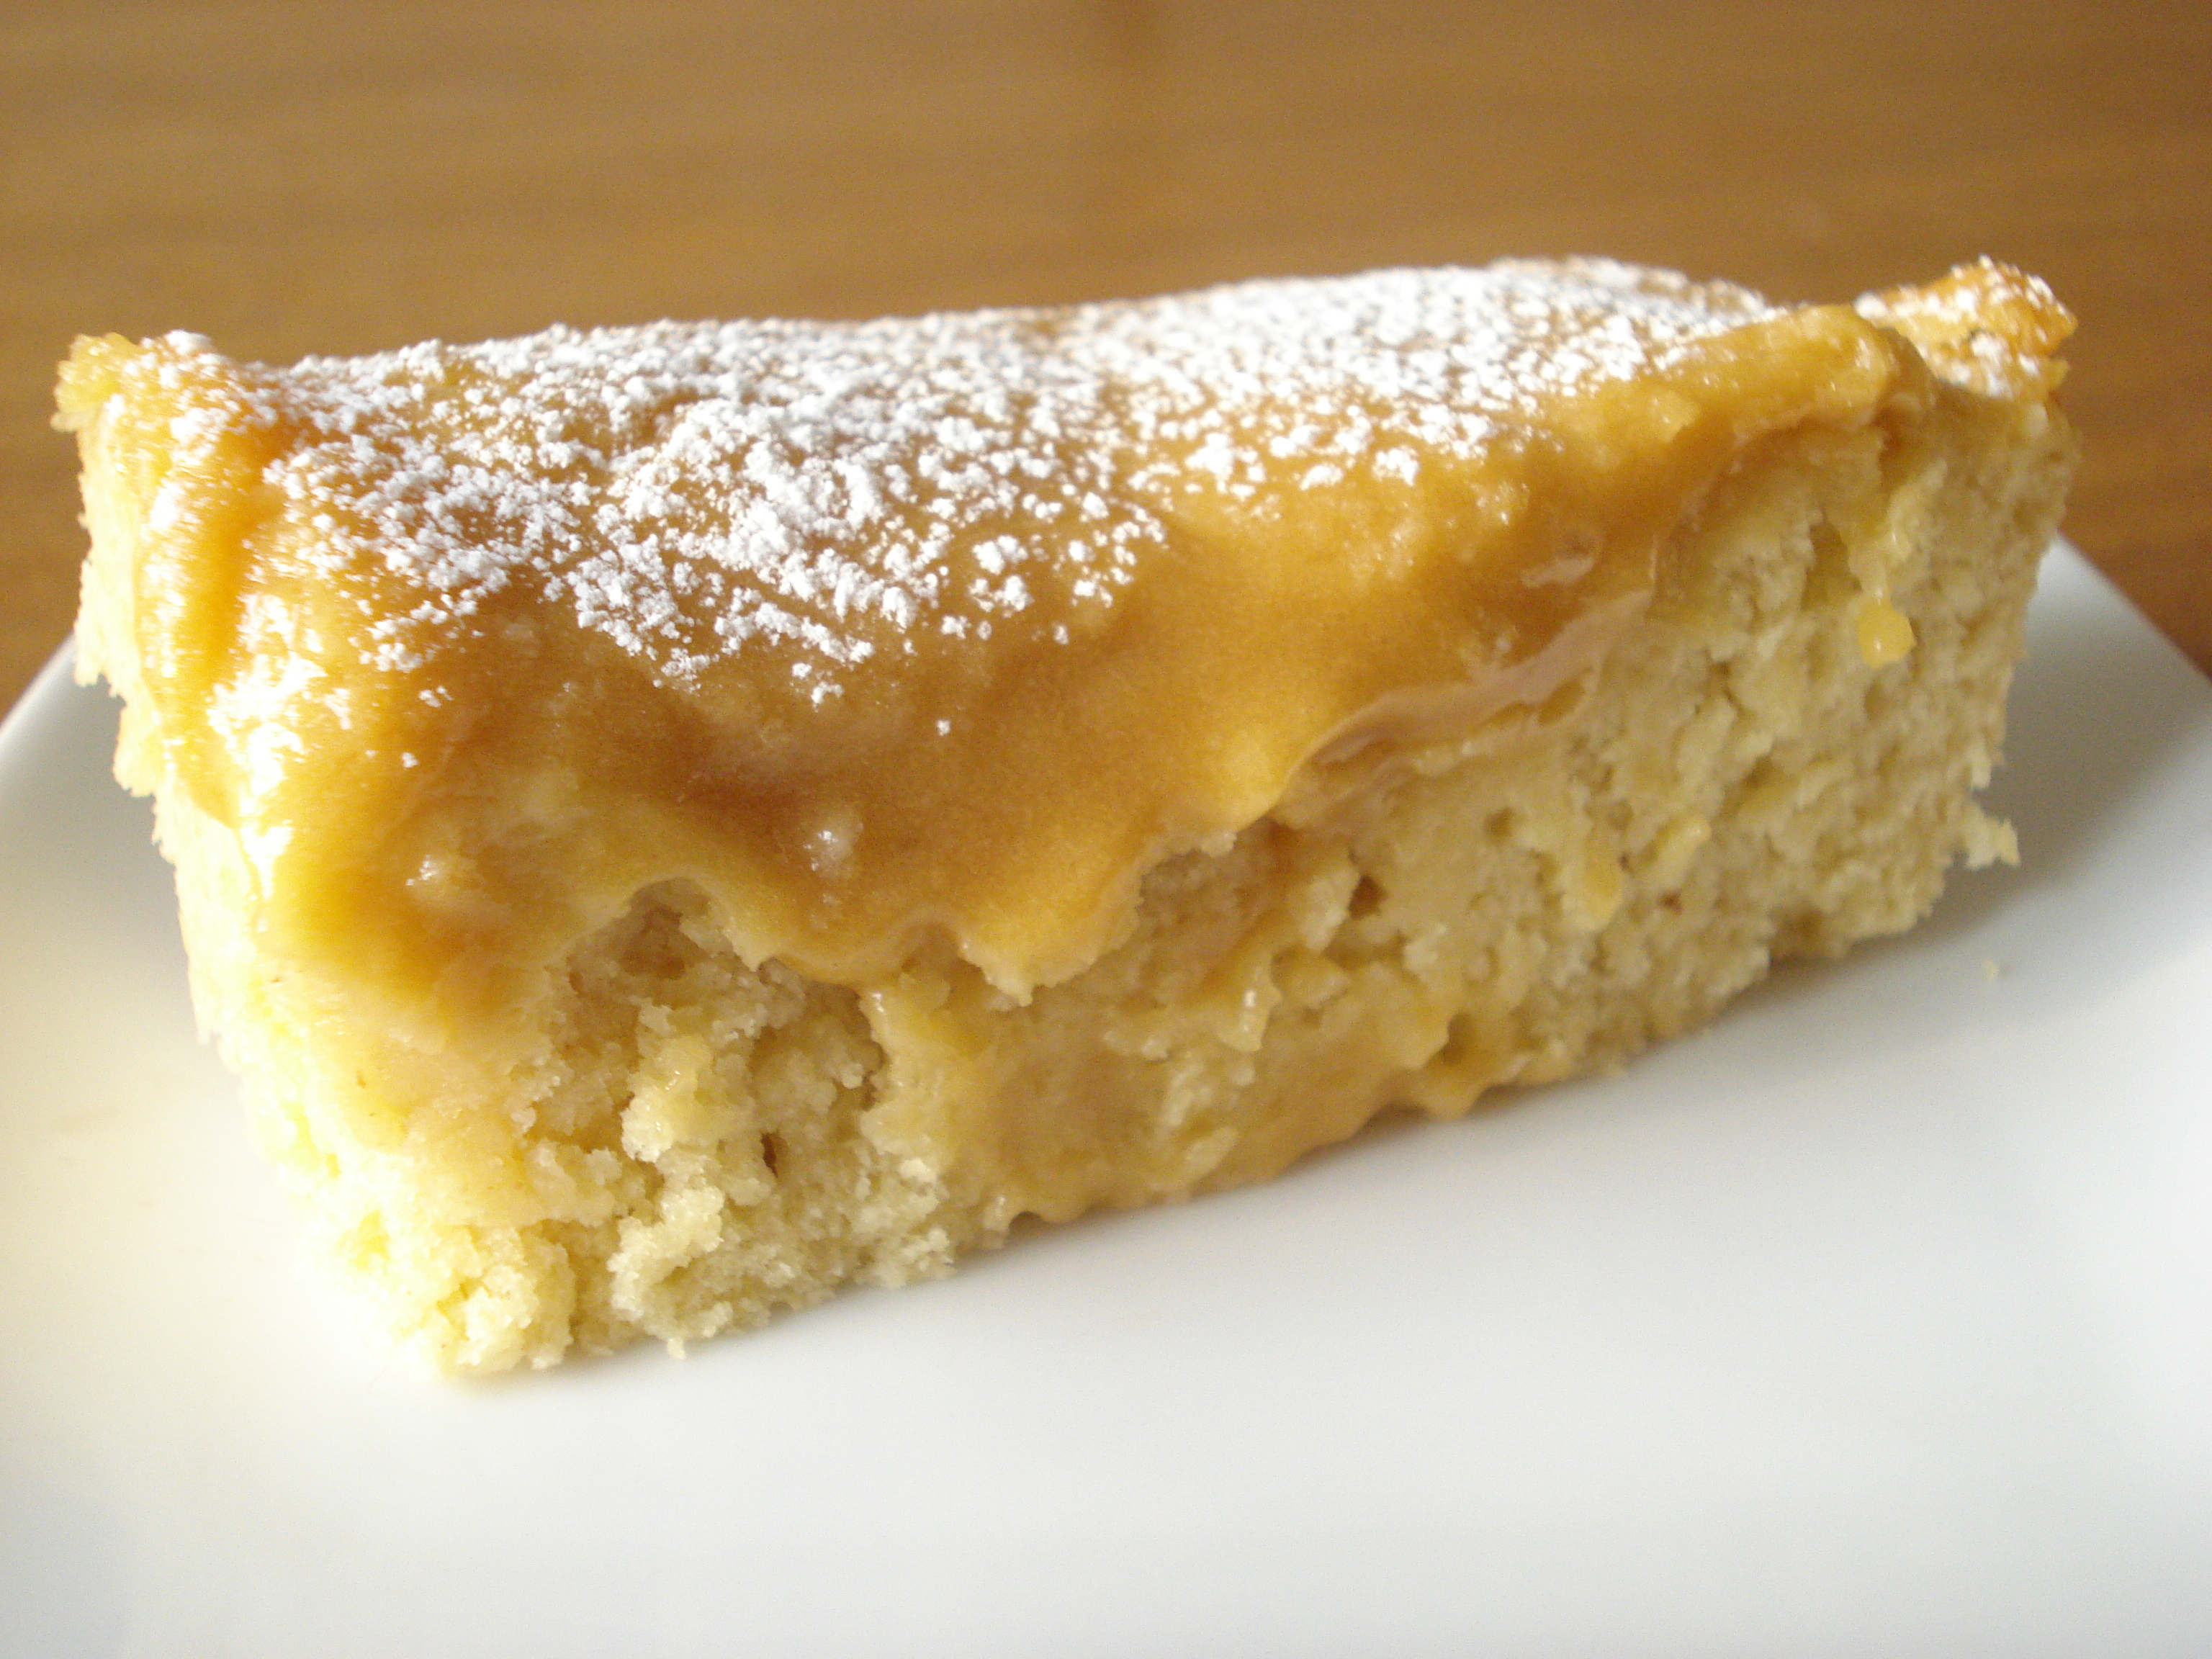 Honey Bun Cake Recipe With Vanilla Pudding